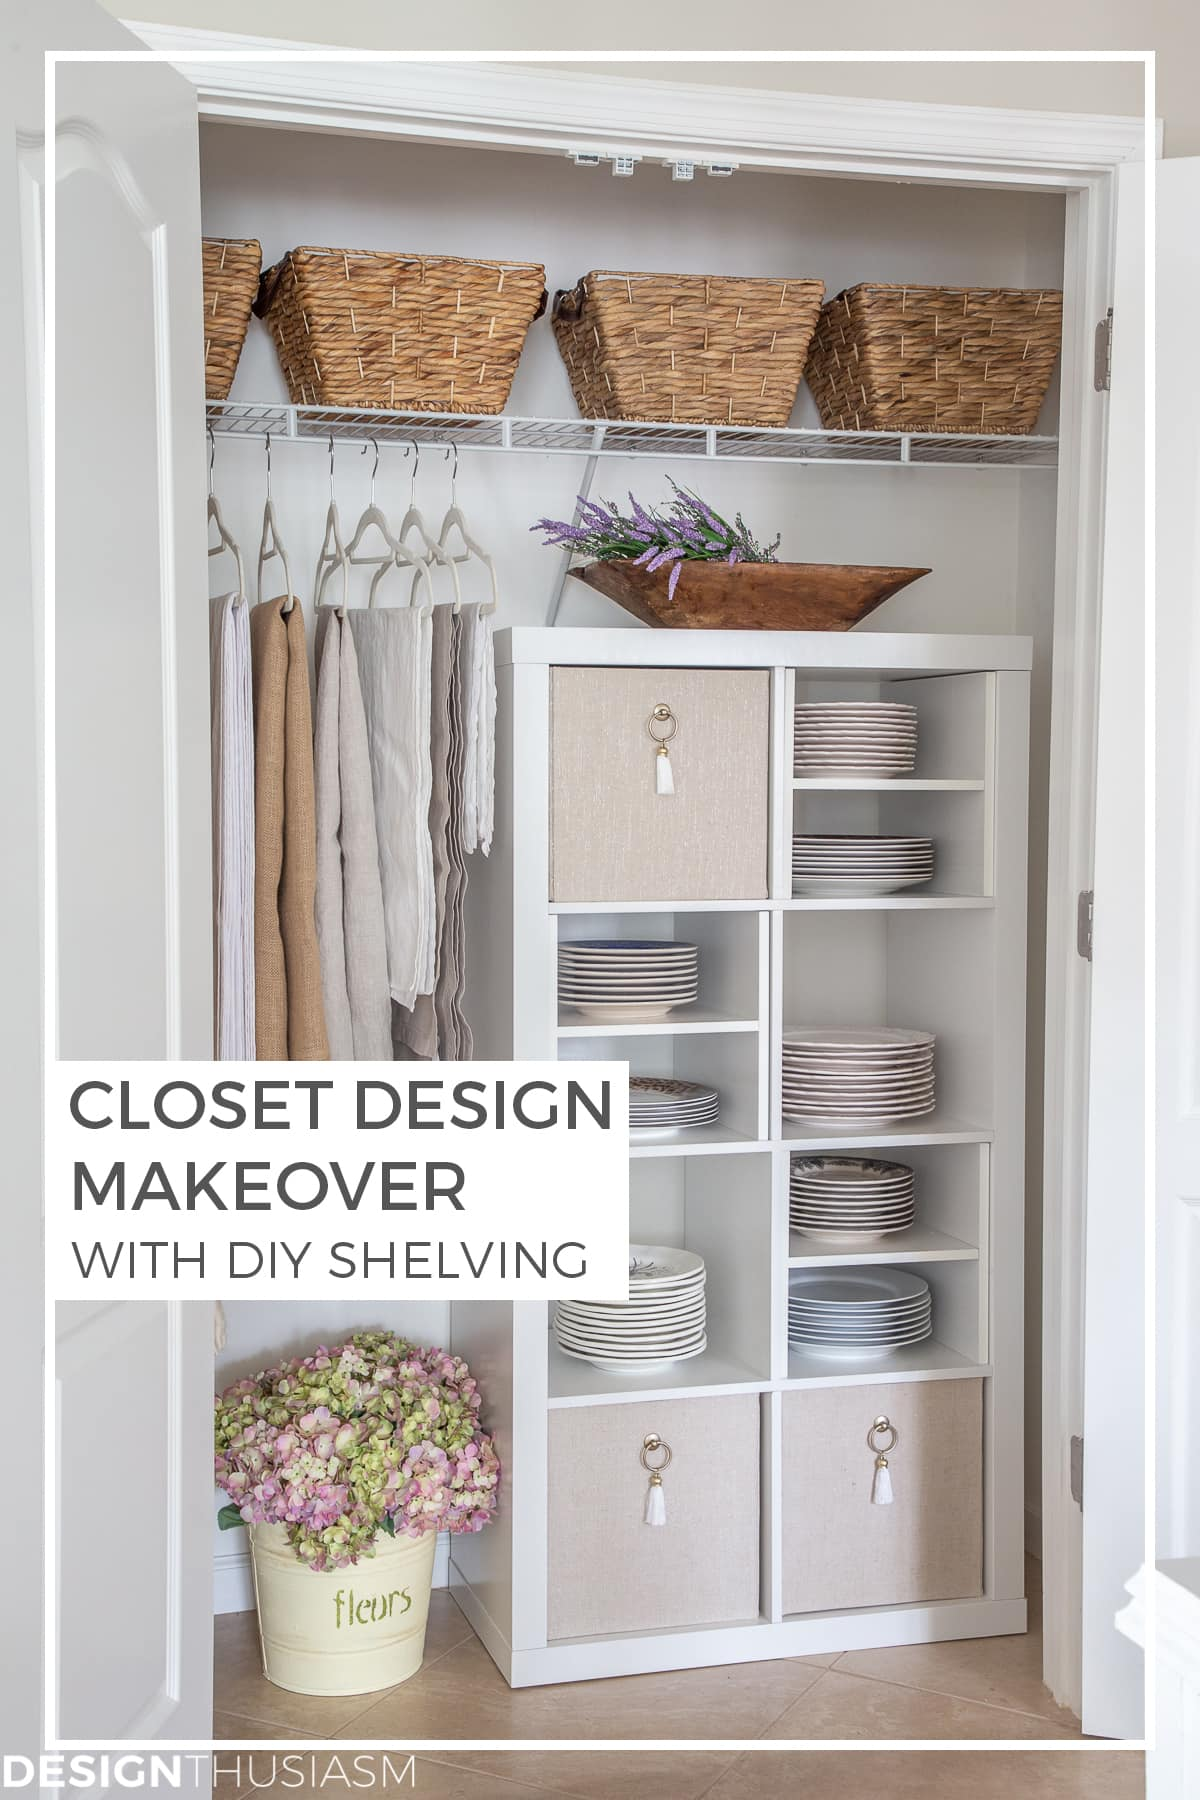 DIY closet shelving unit with plate storage